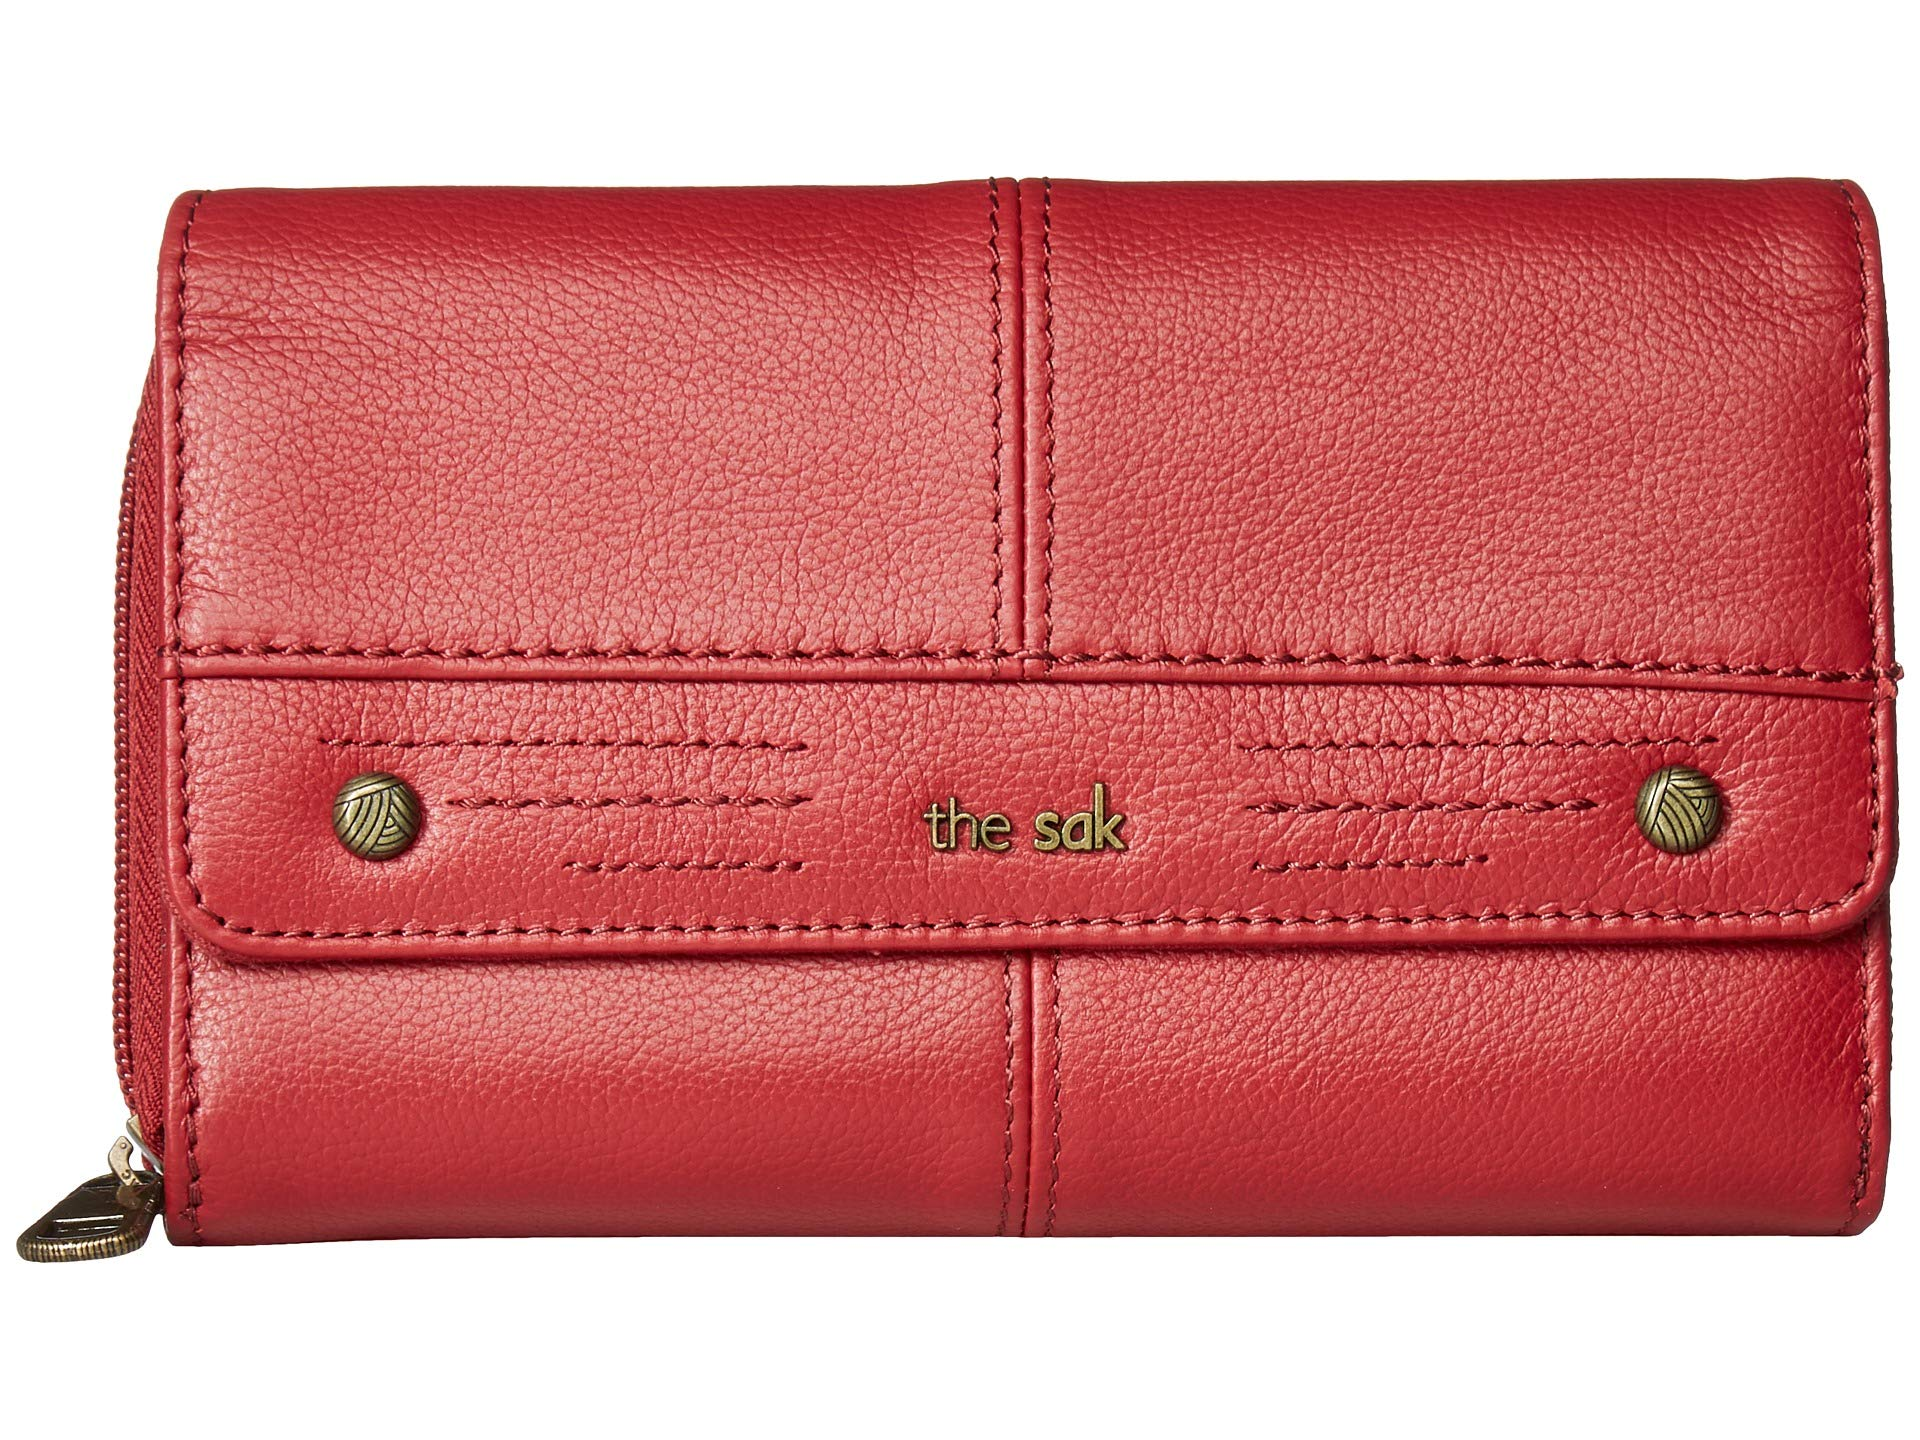 Sak Large Scarlet Sequoia Extra The Wallet CwBUBd